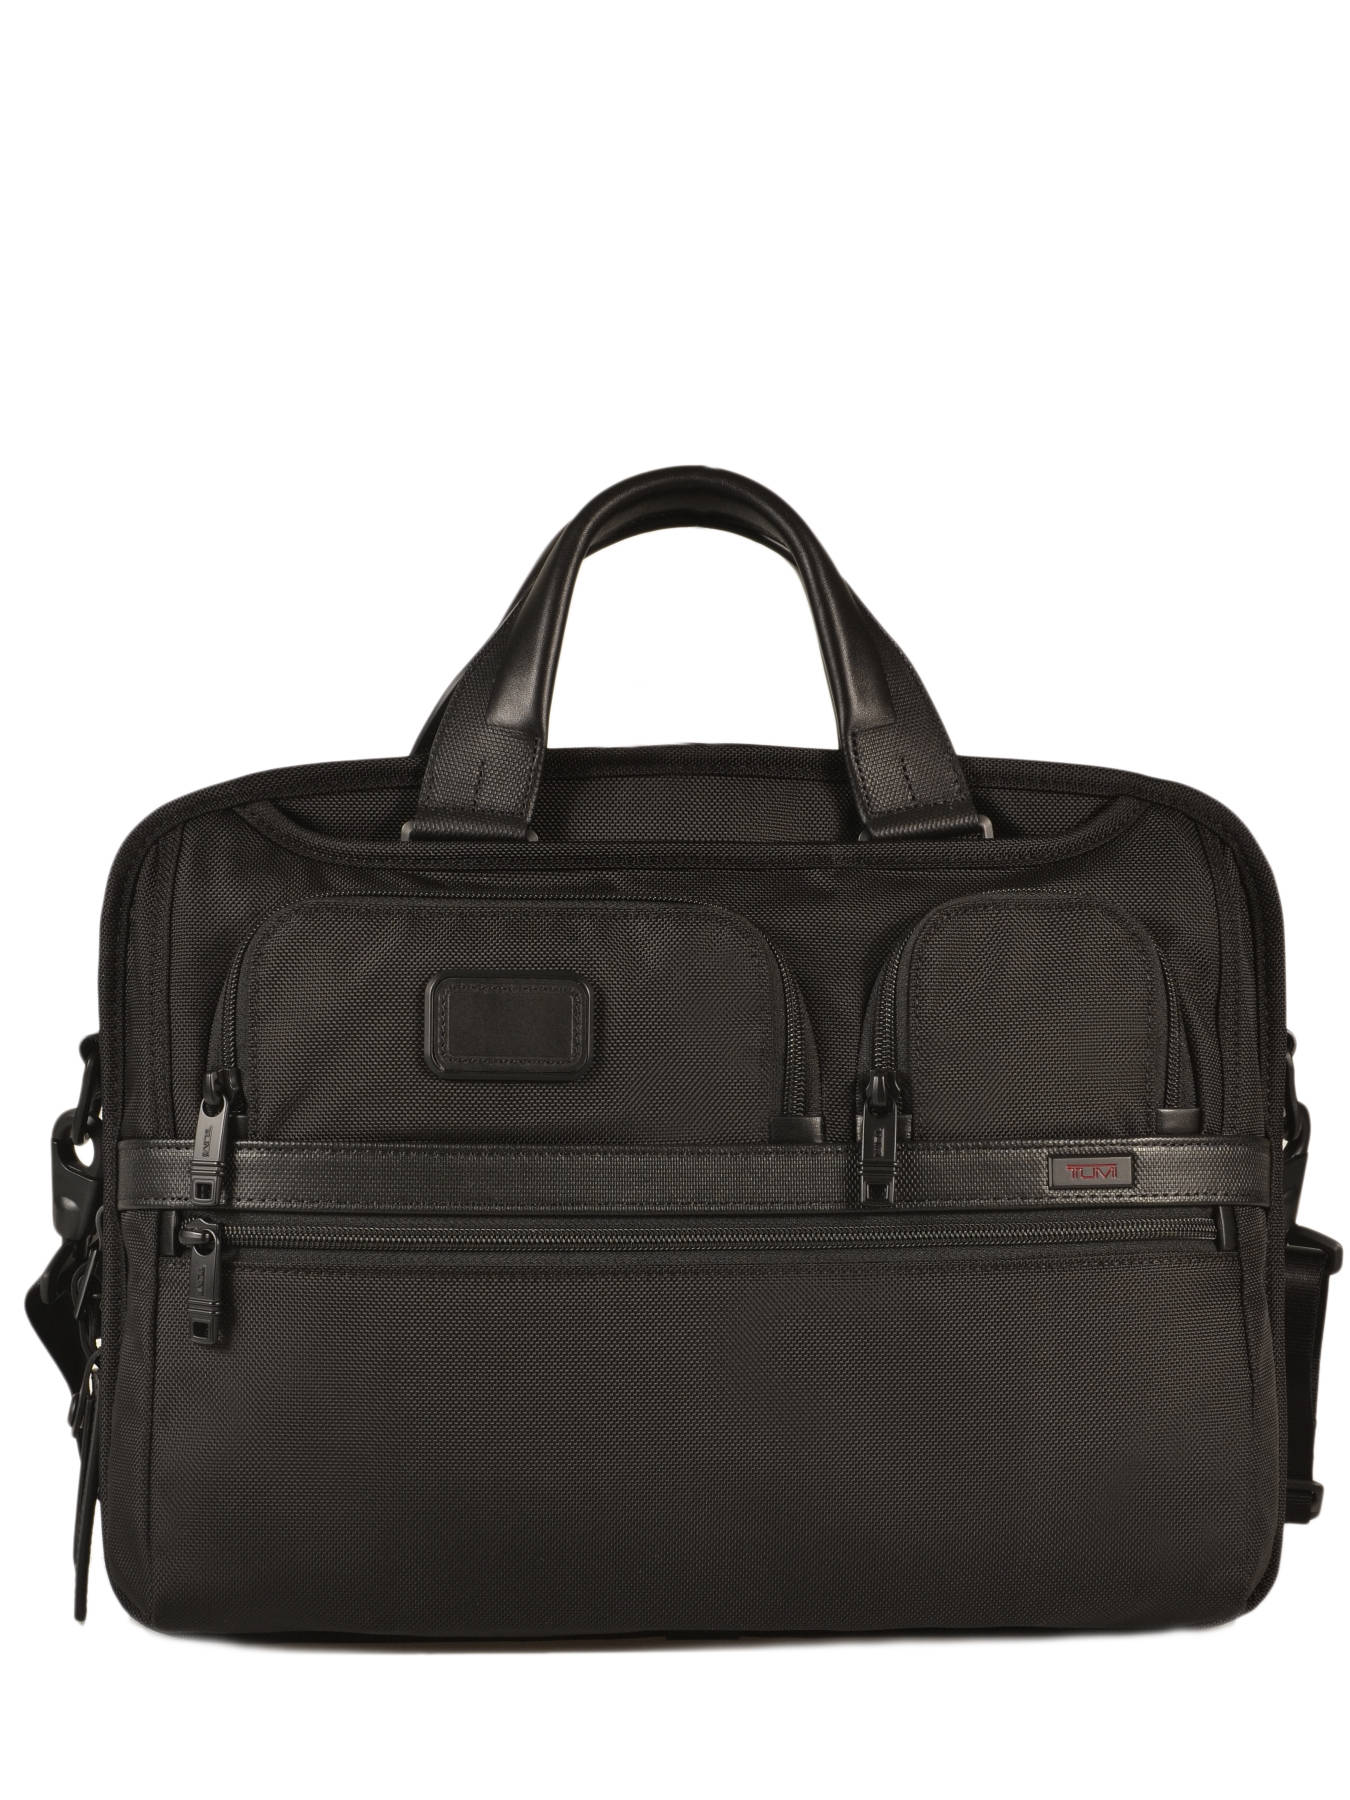 Porte-documents Tumi Noir alpha 2 business DH26516